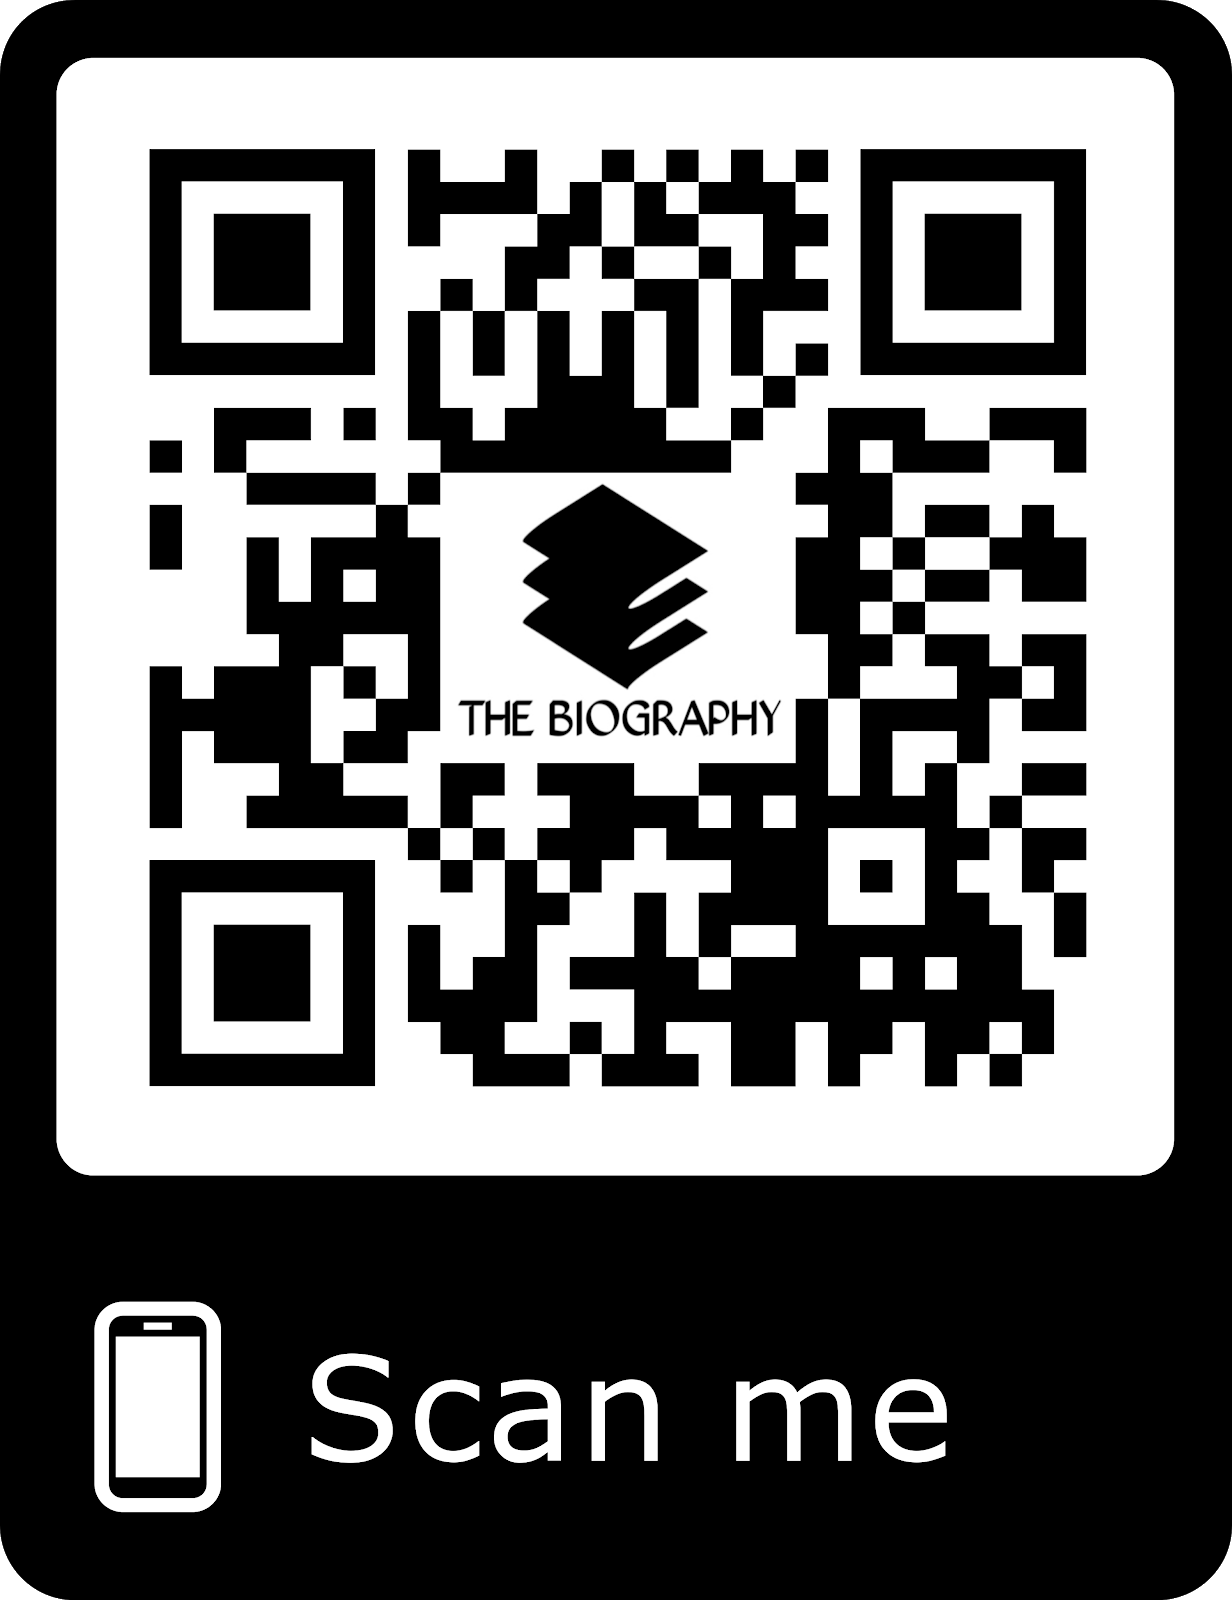 Bar Code For Biography App Download or Click The Bar Code